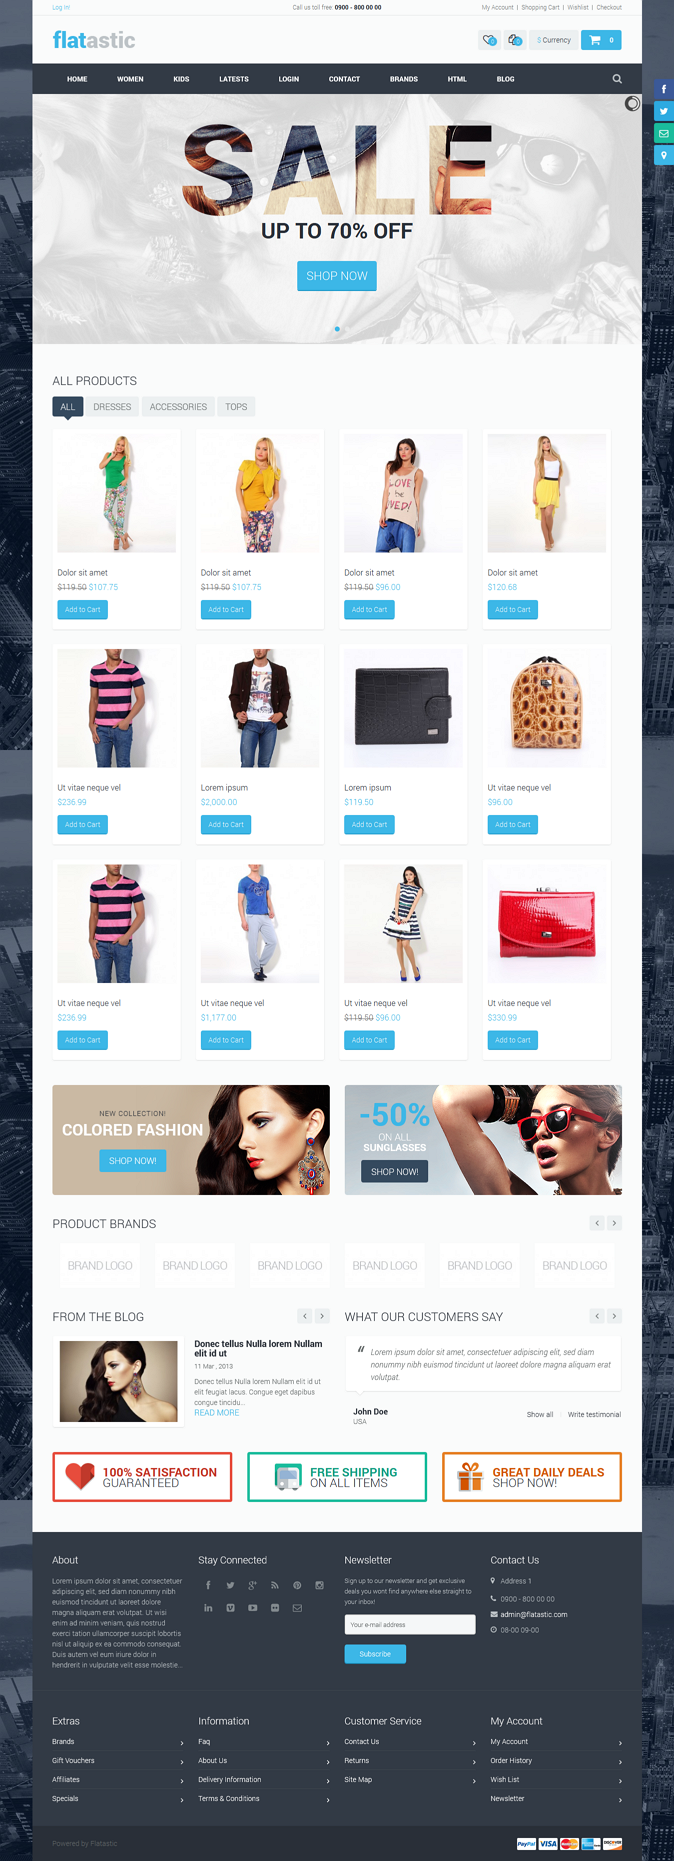 Flatastic premium responsive retina-ready multipurpose OpenCart theme.It was developed accord ...